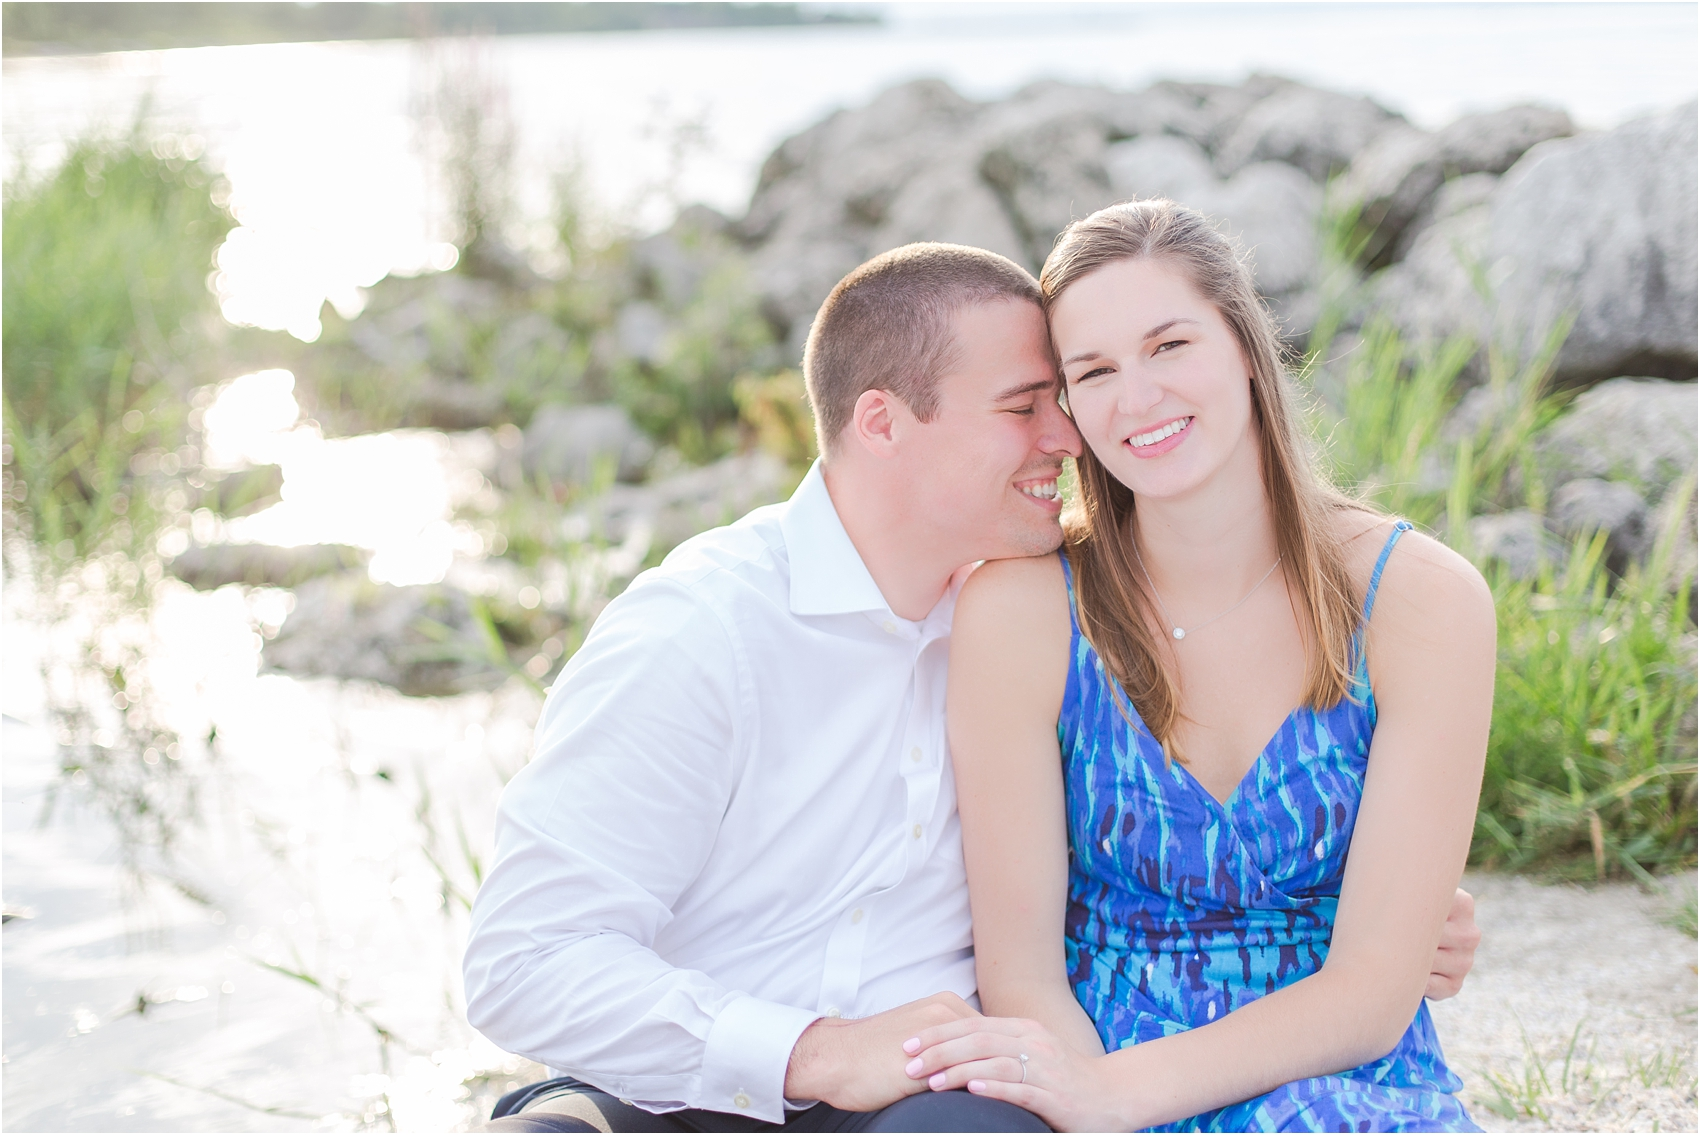 light-hearted-sunset-engagement-photos-at-the-beach-in-oregon-oh-by-courtney-carolyn-photography_0023.jpg